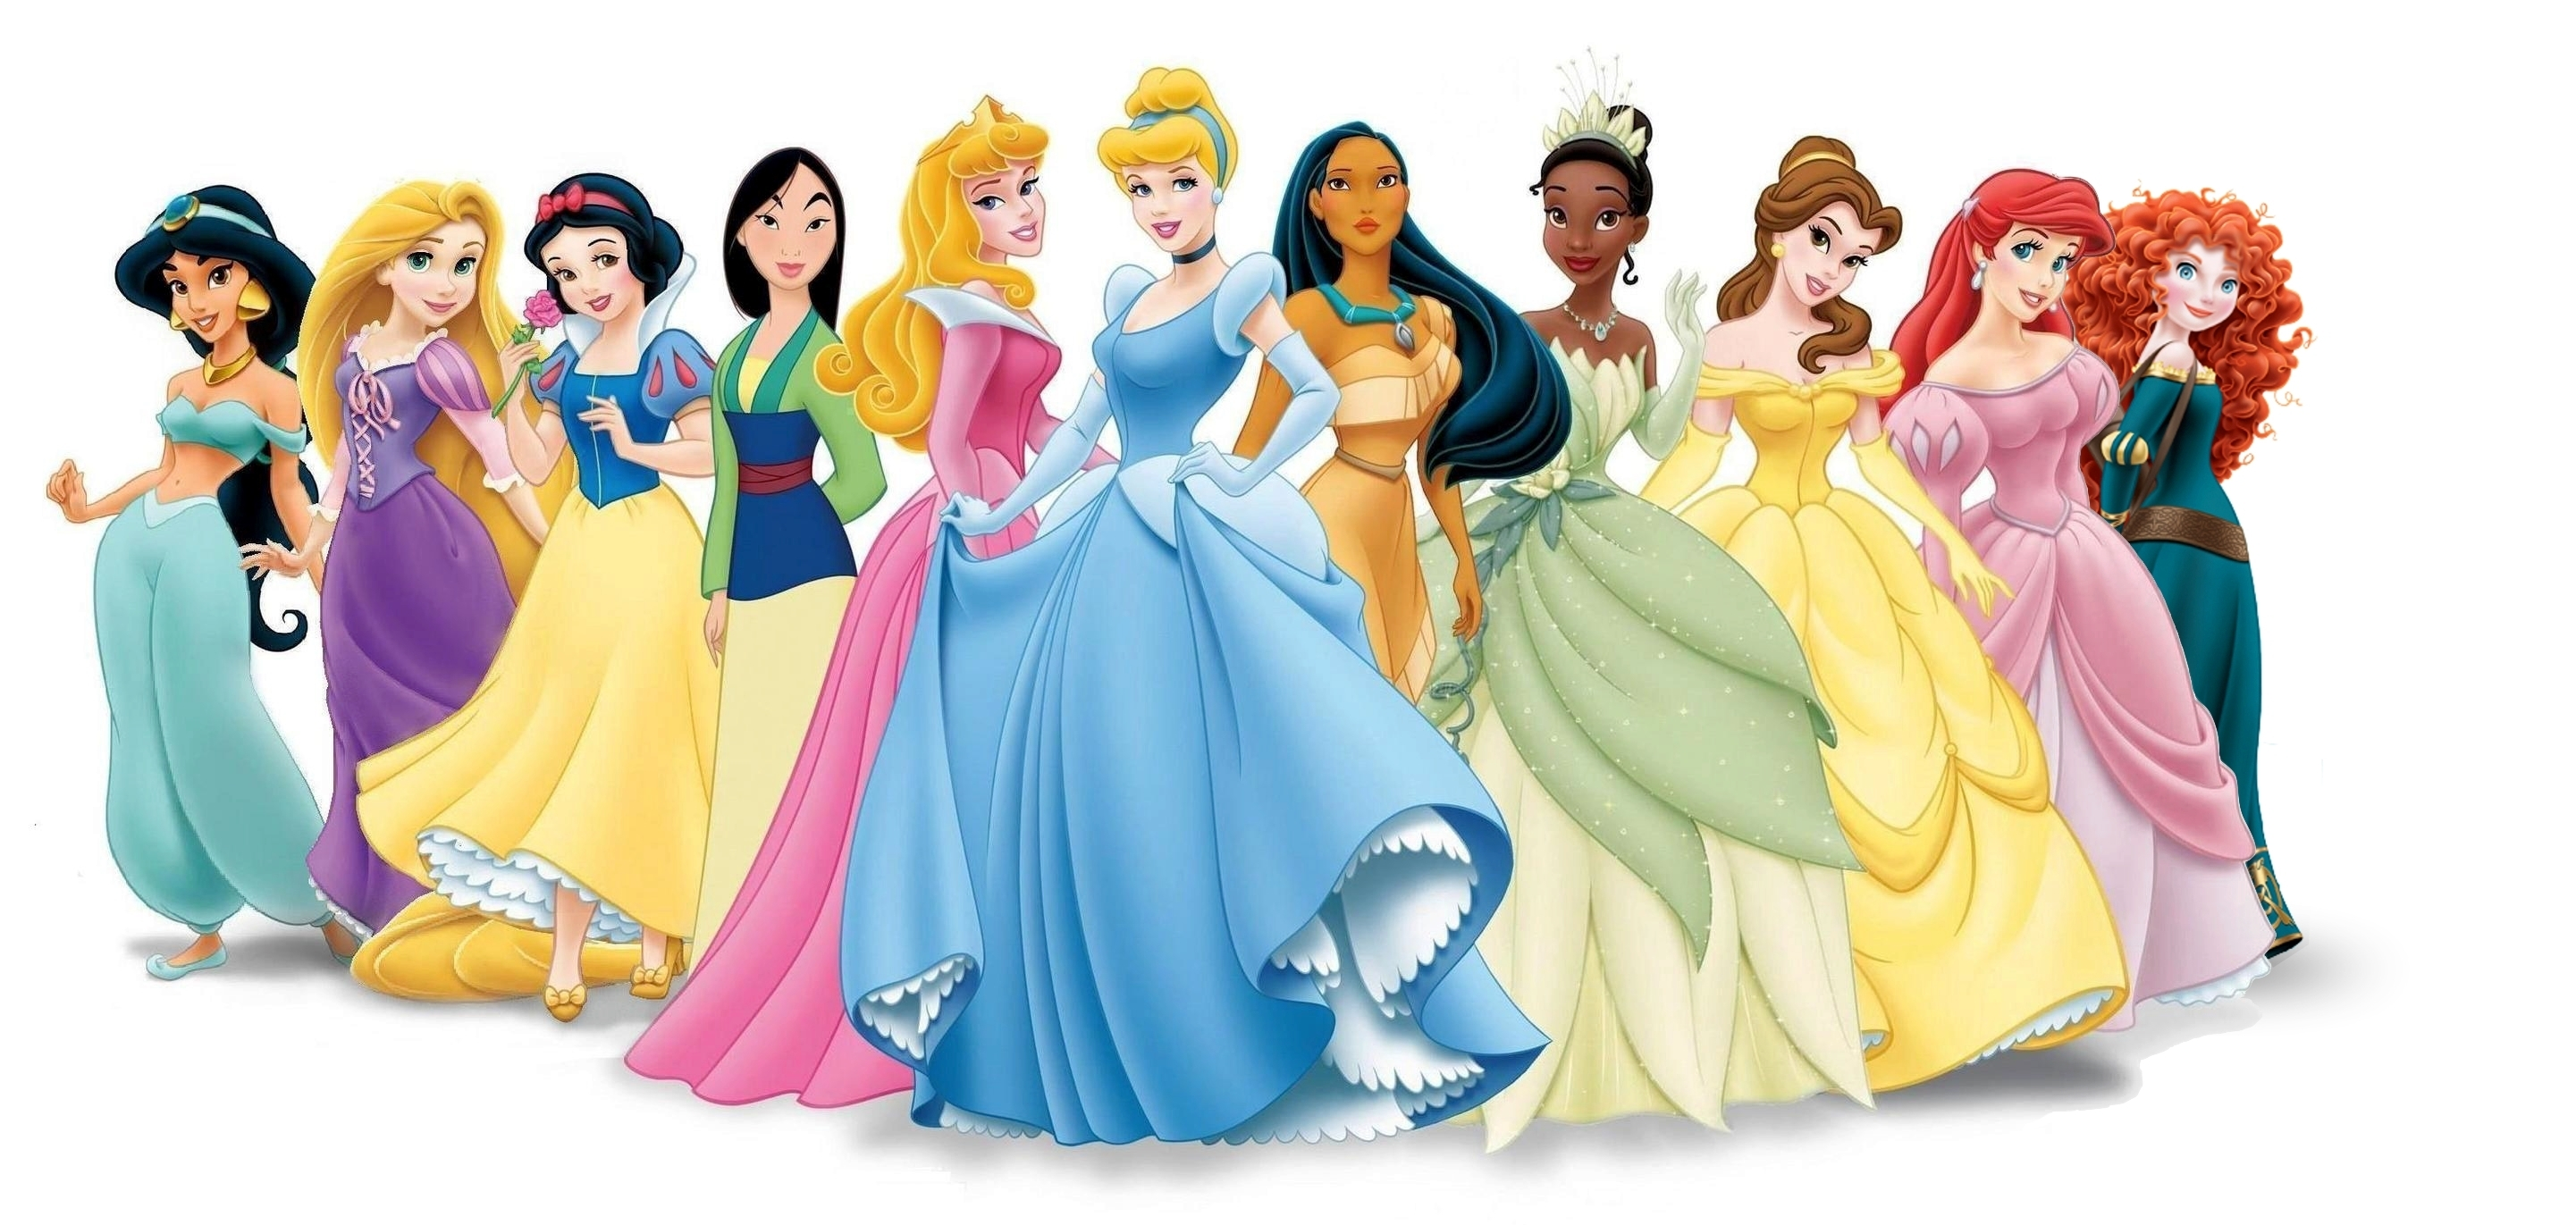 desktop disney princess hd with cartoon prince image download for pc